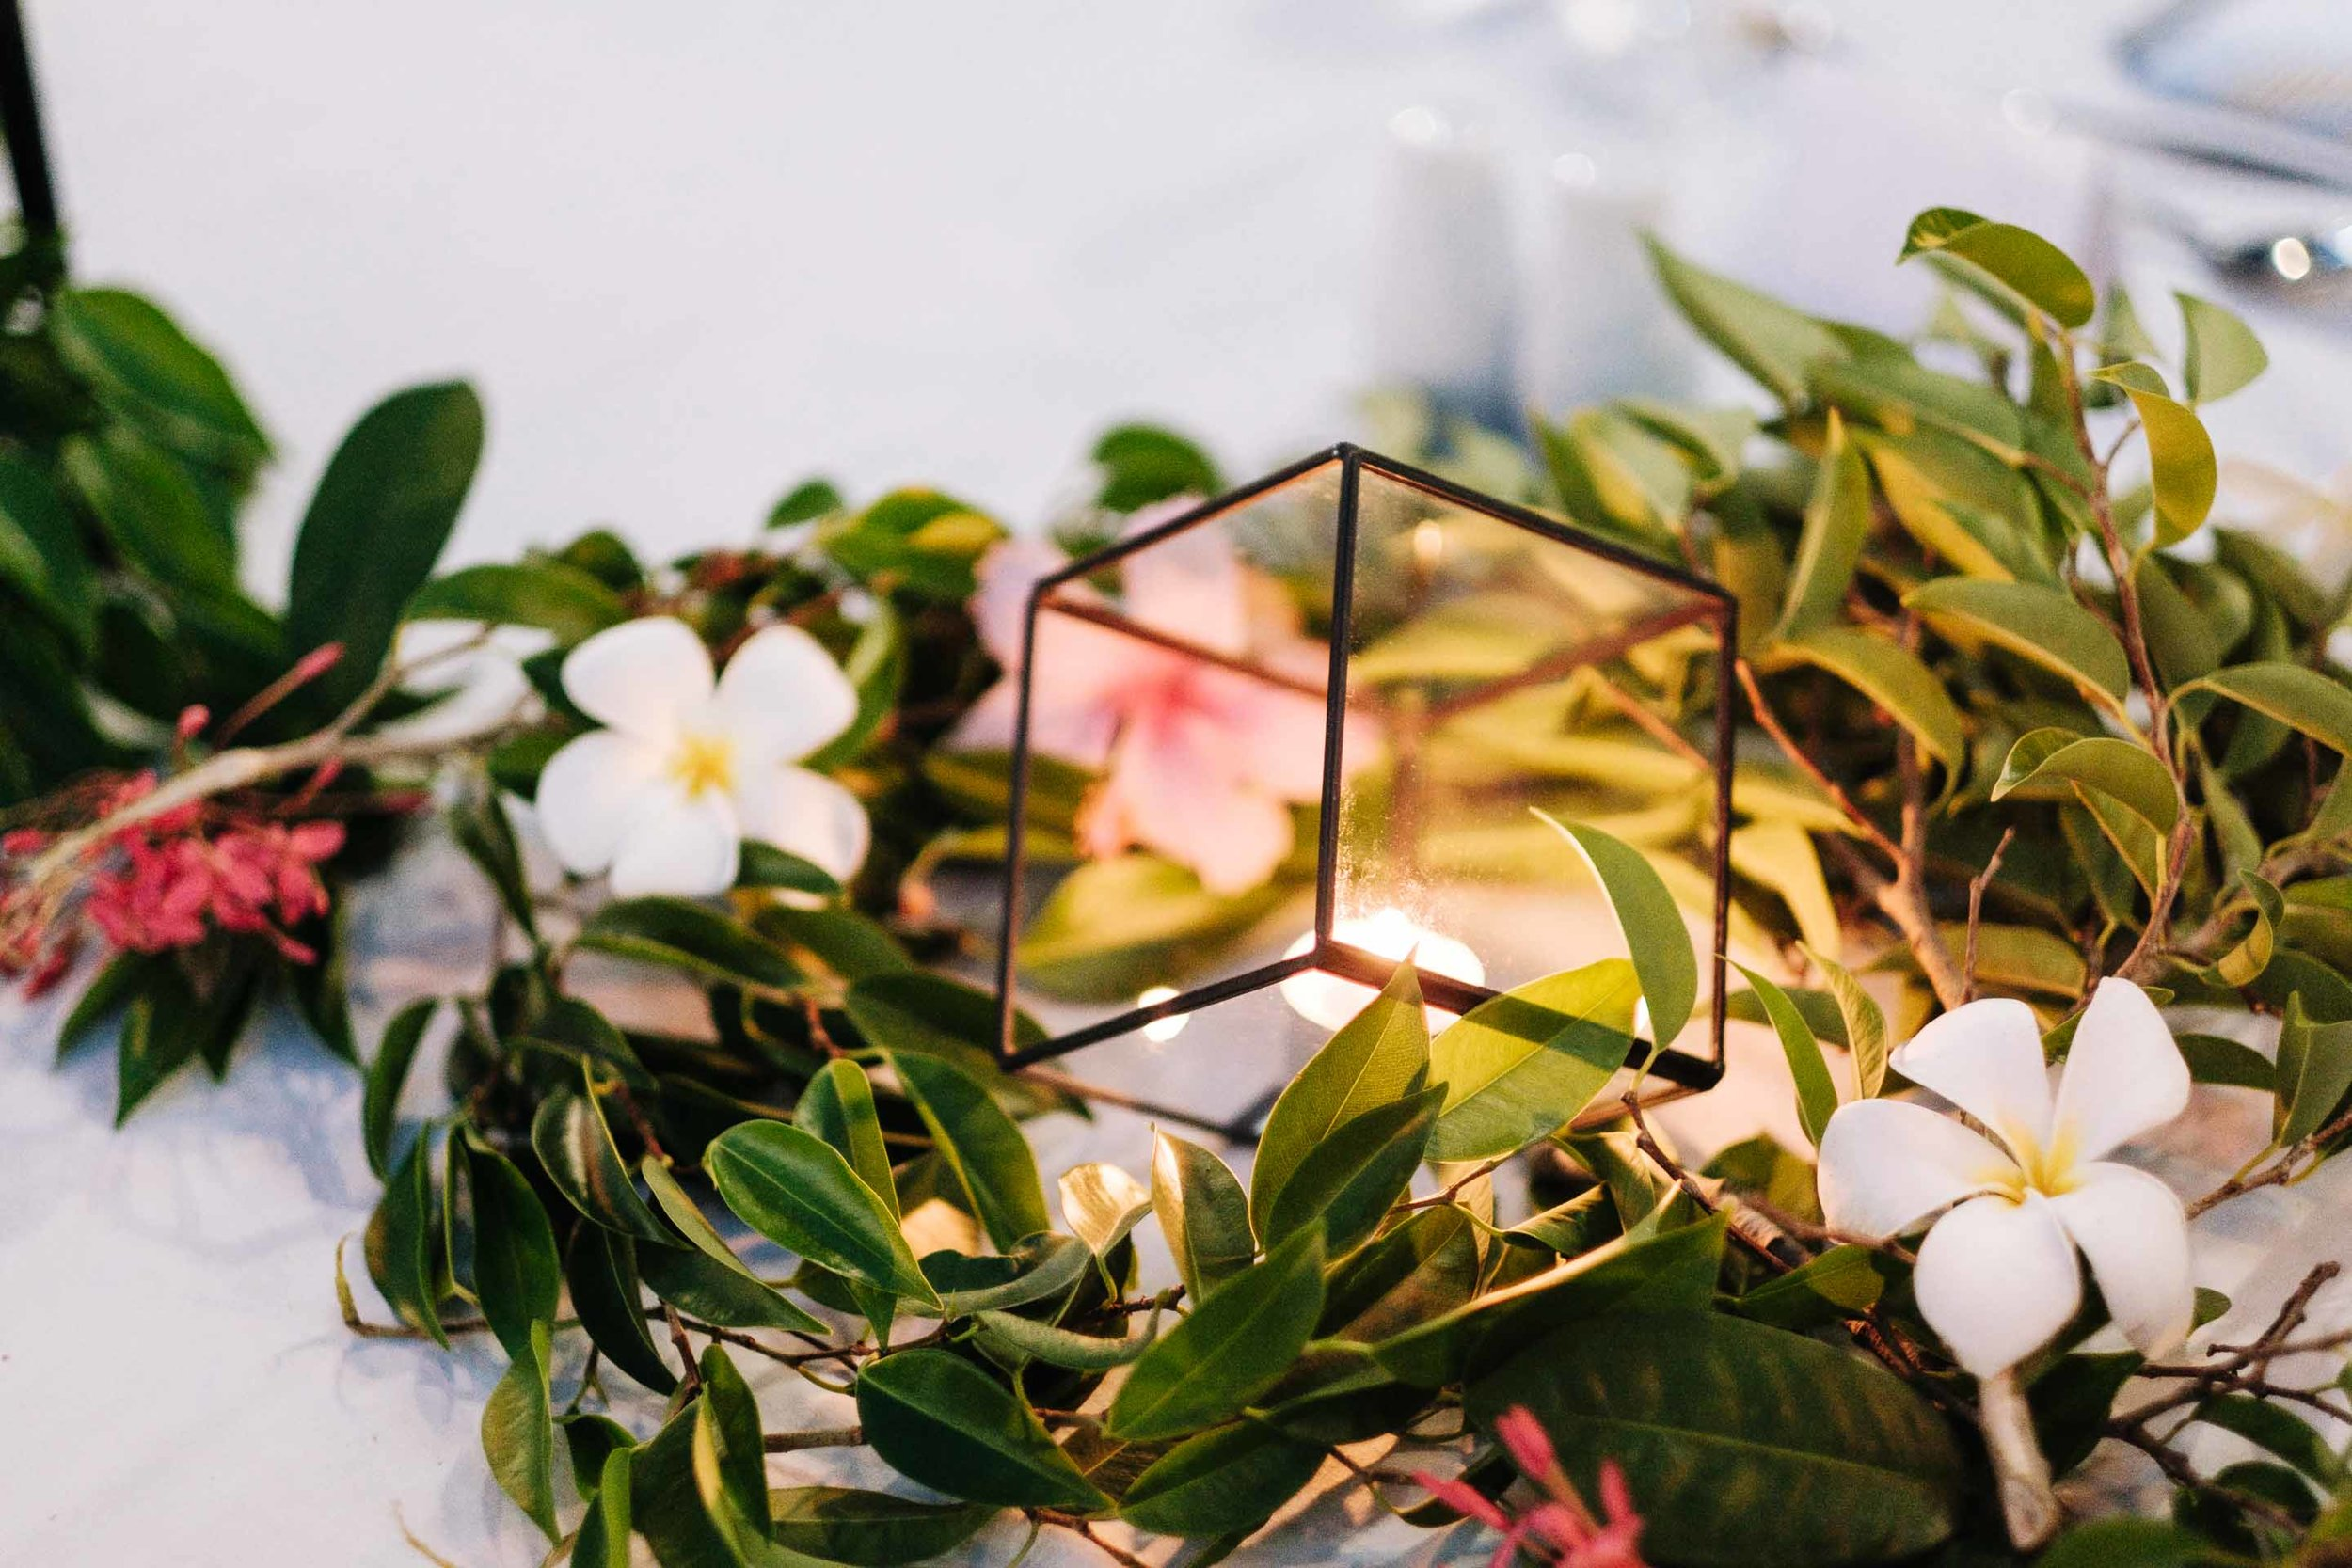 geometric candle holder between greenery as part of the bridal table setup